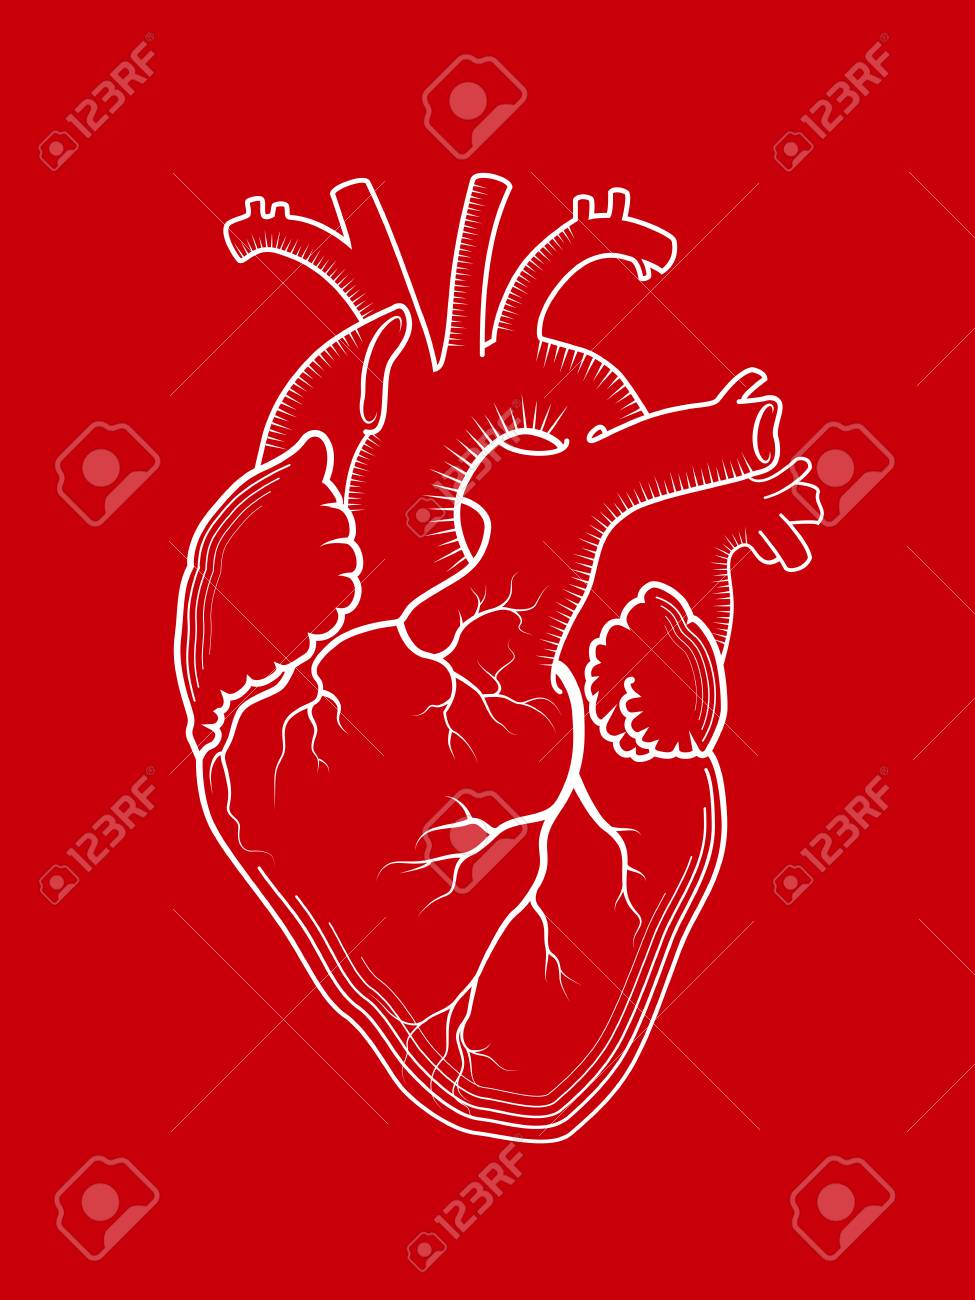 Heart. The Internal Human Organ, Anatomical Structure. Red Detailed ...